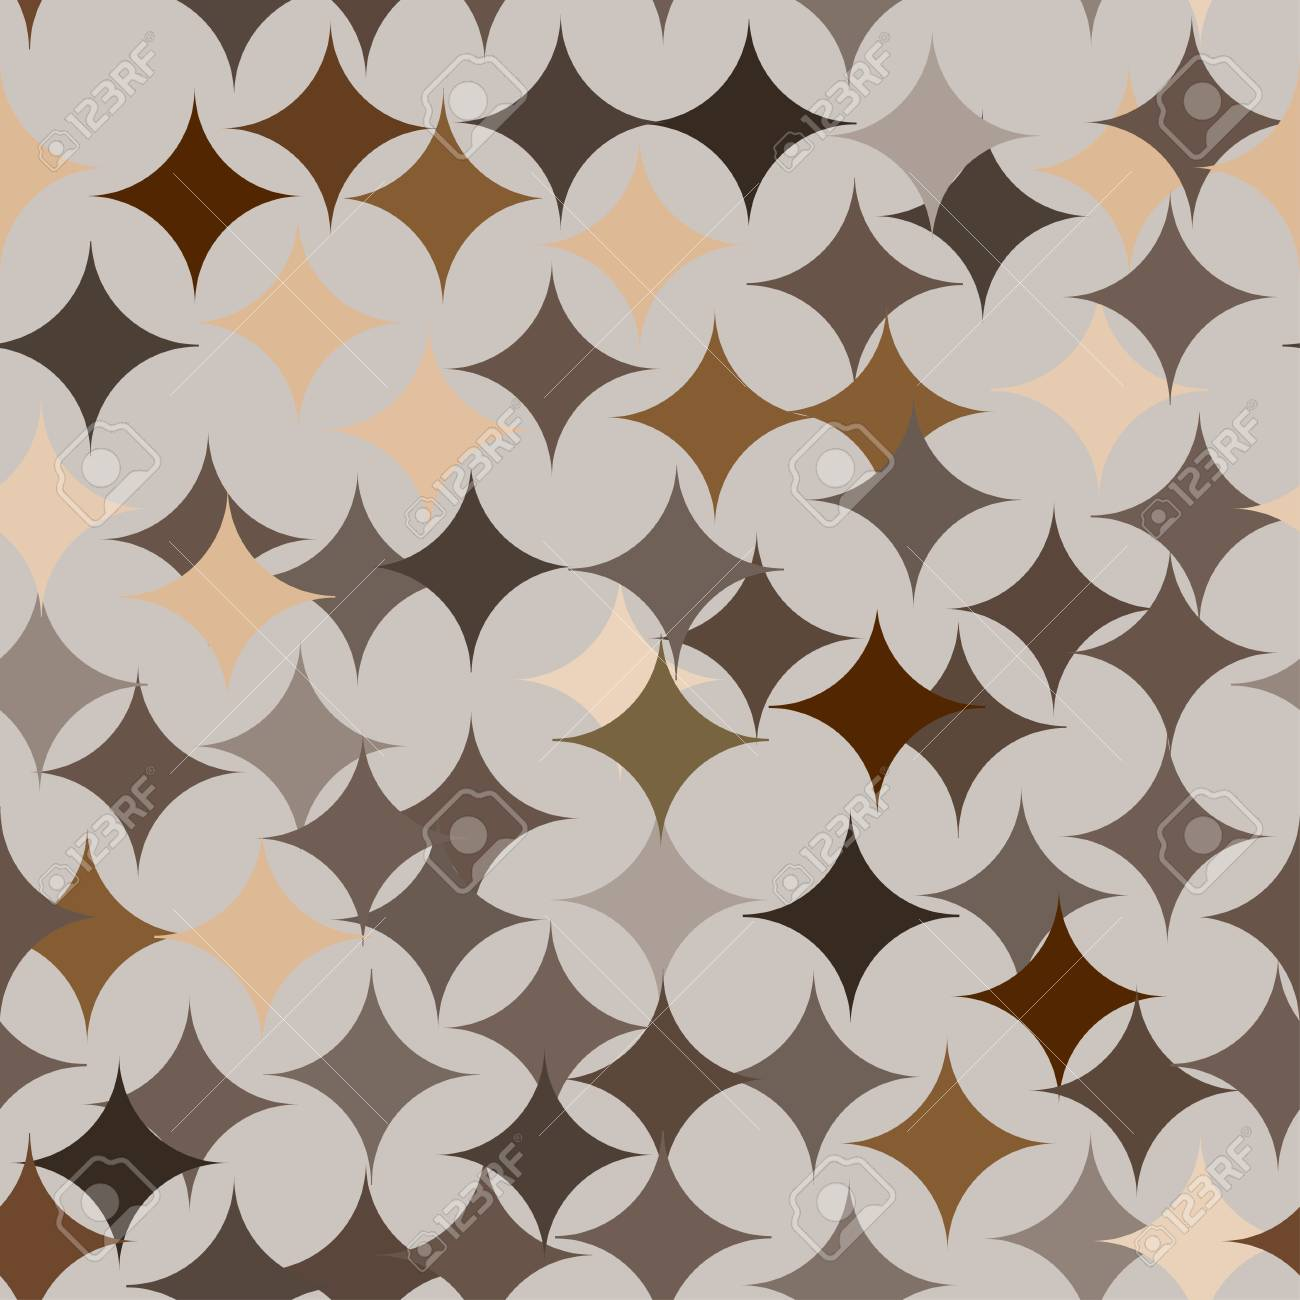 Abstract vector seamless retro tile pattern with geometric rouns brown texture for wrapping, craft, textile - 112229678